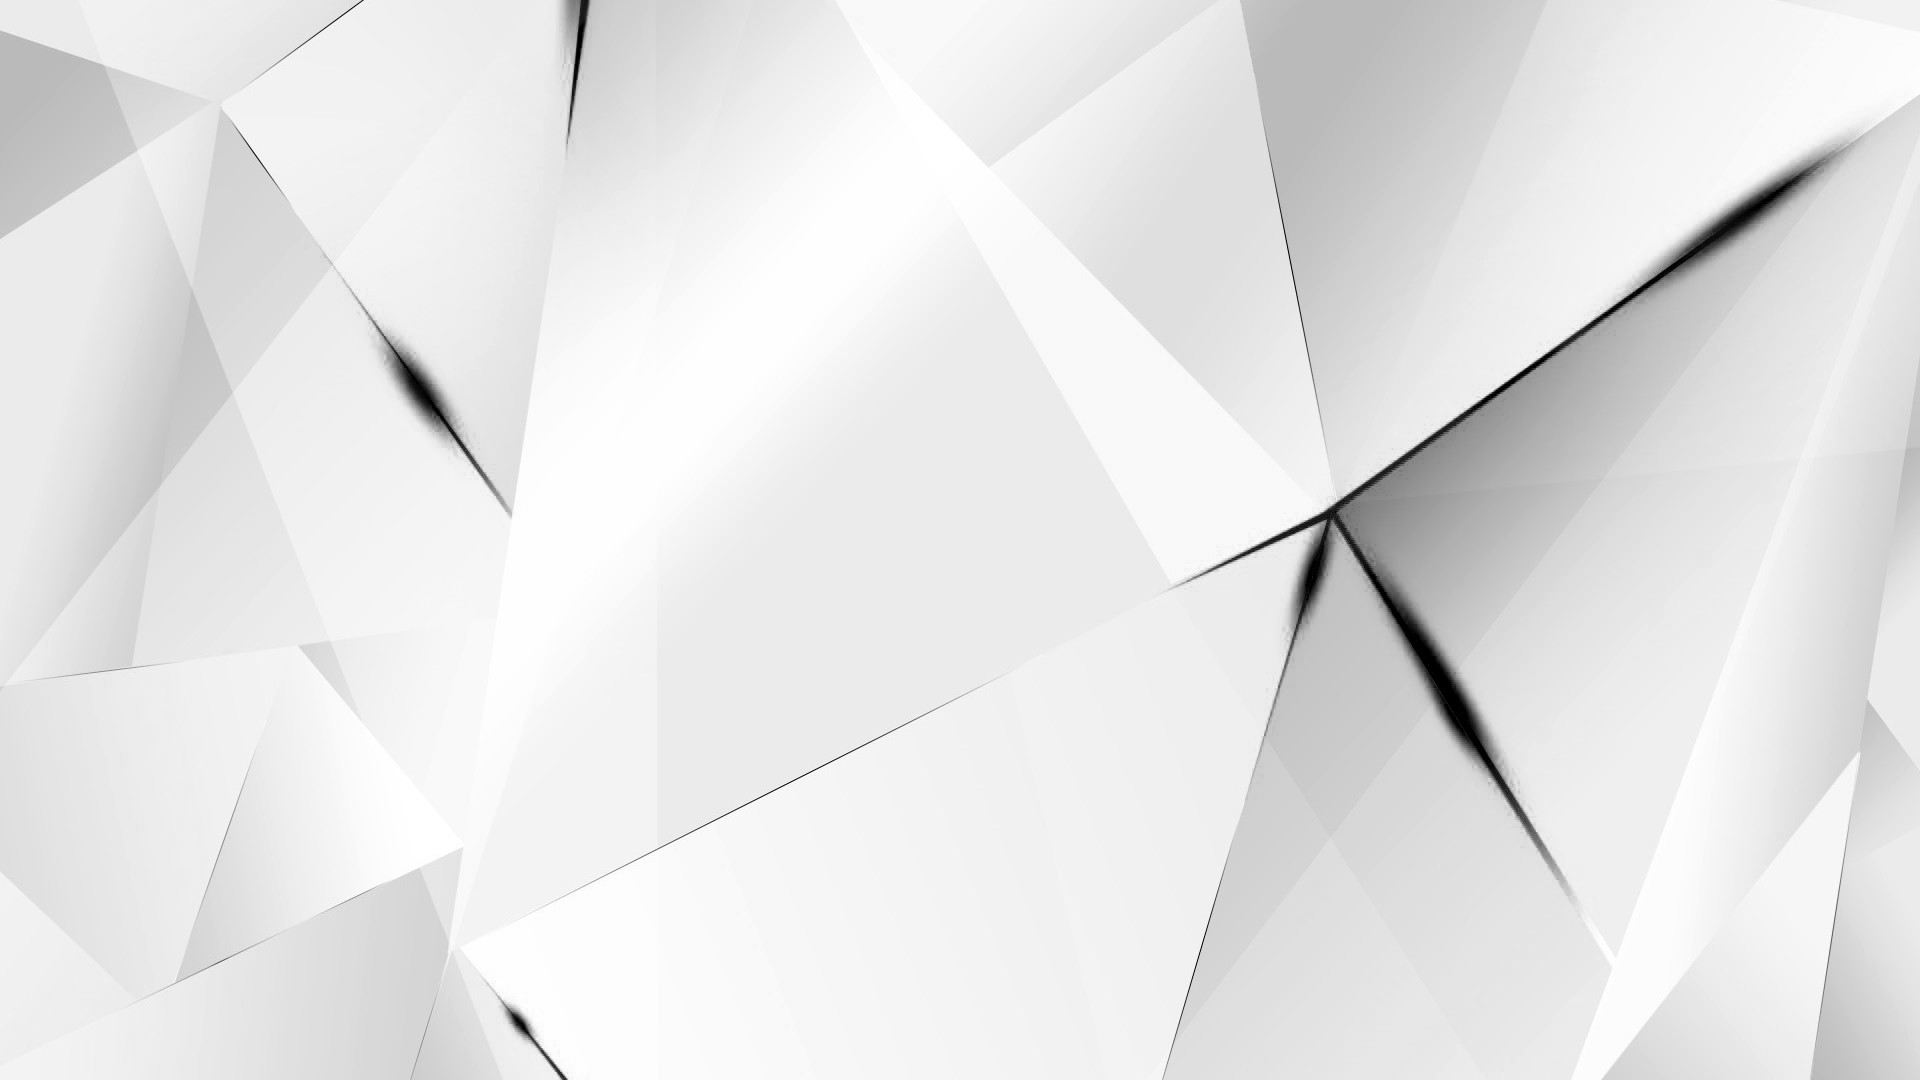 … Wallpapers – Black Abstract Polygons (White BG) by kaminohunter